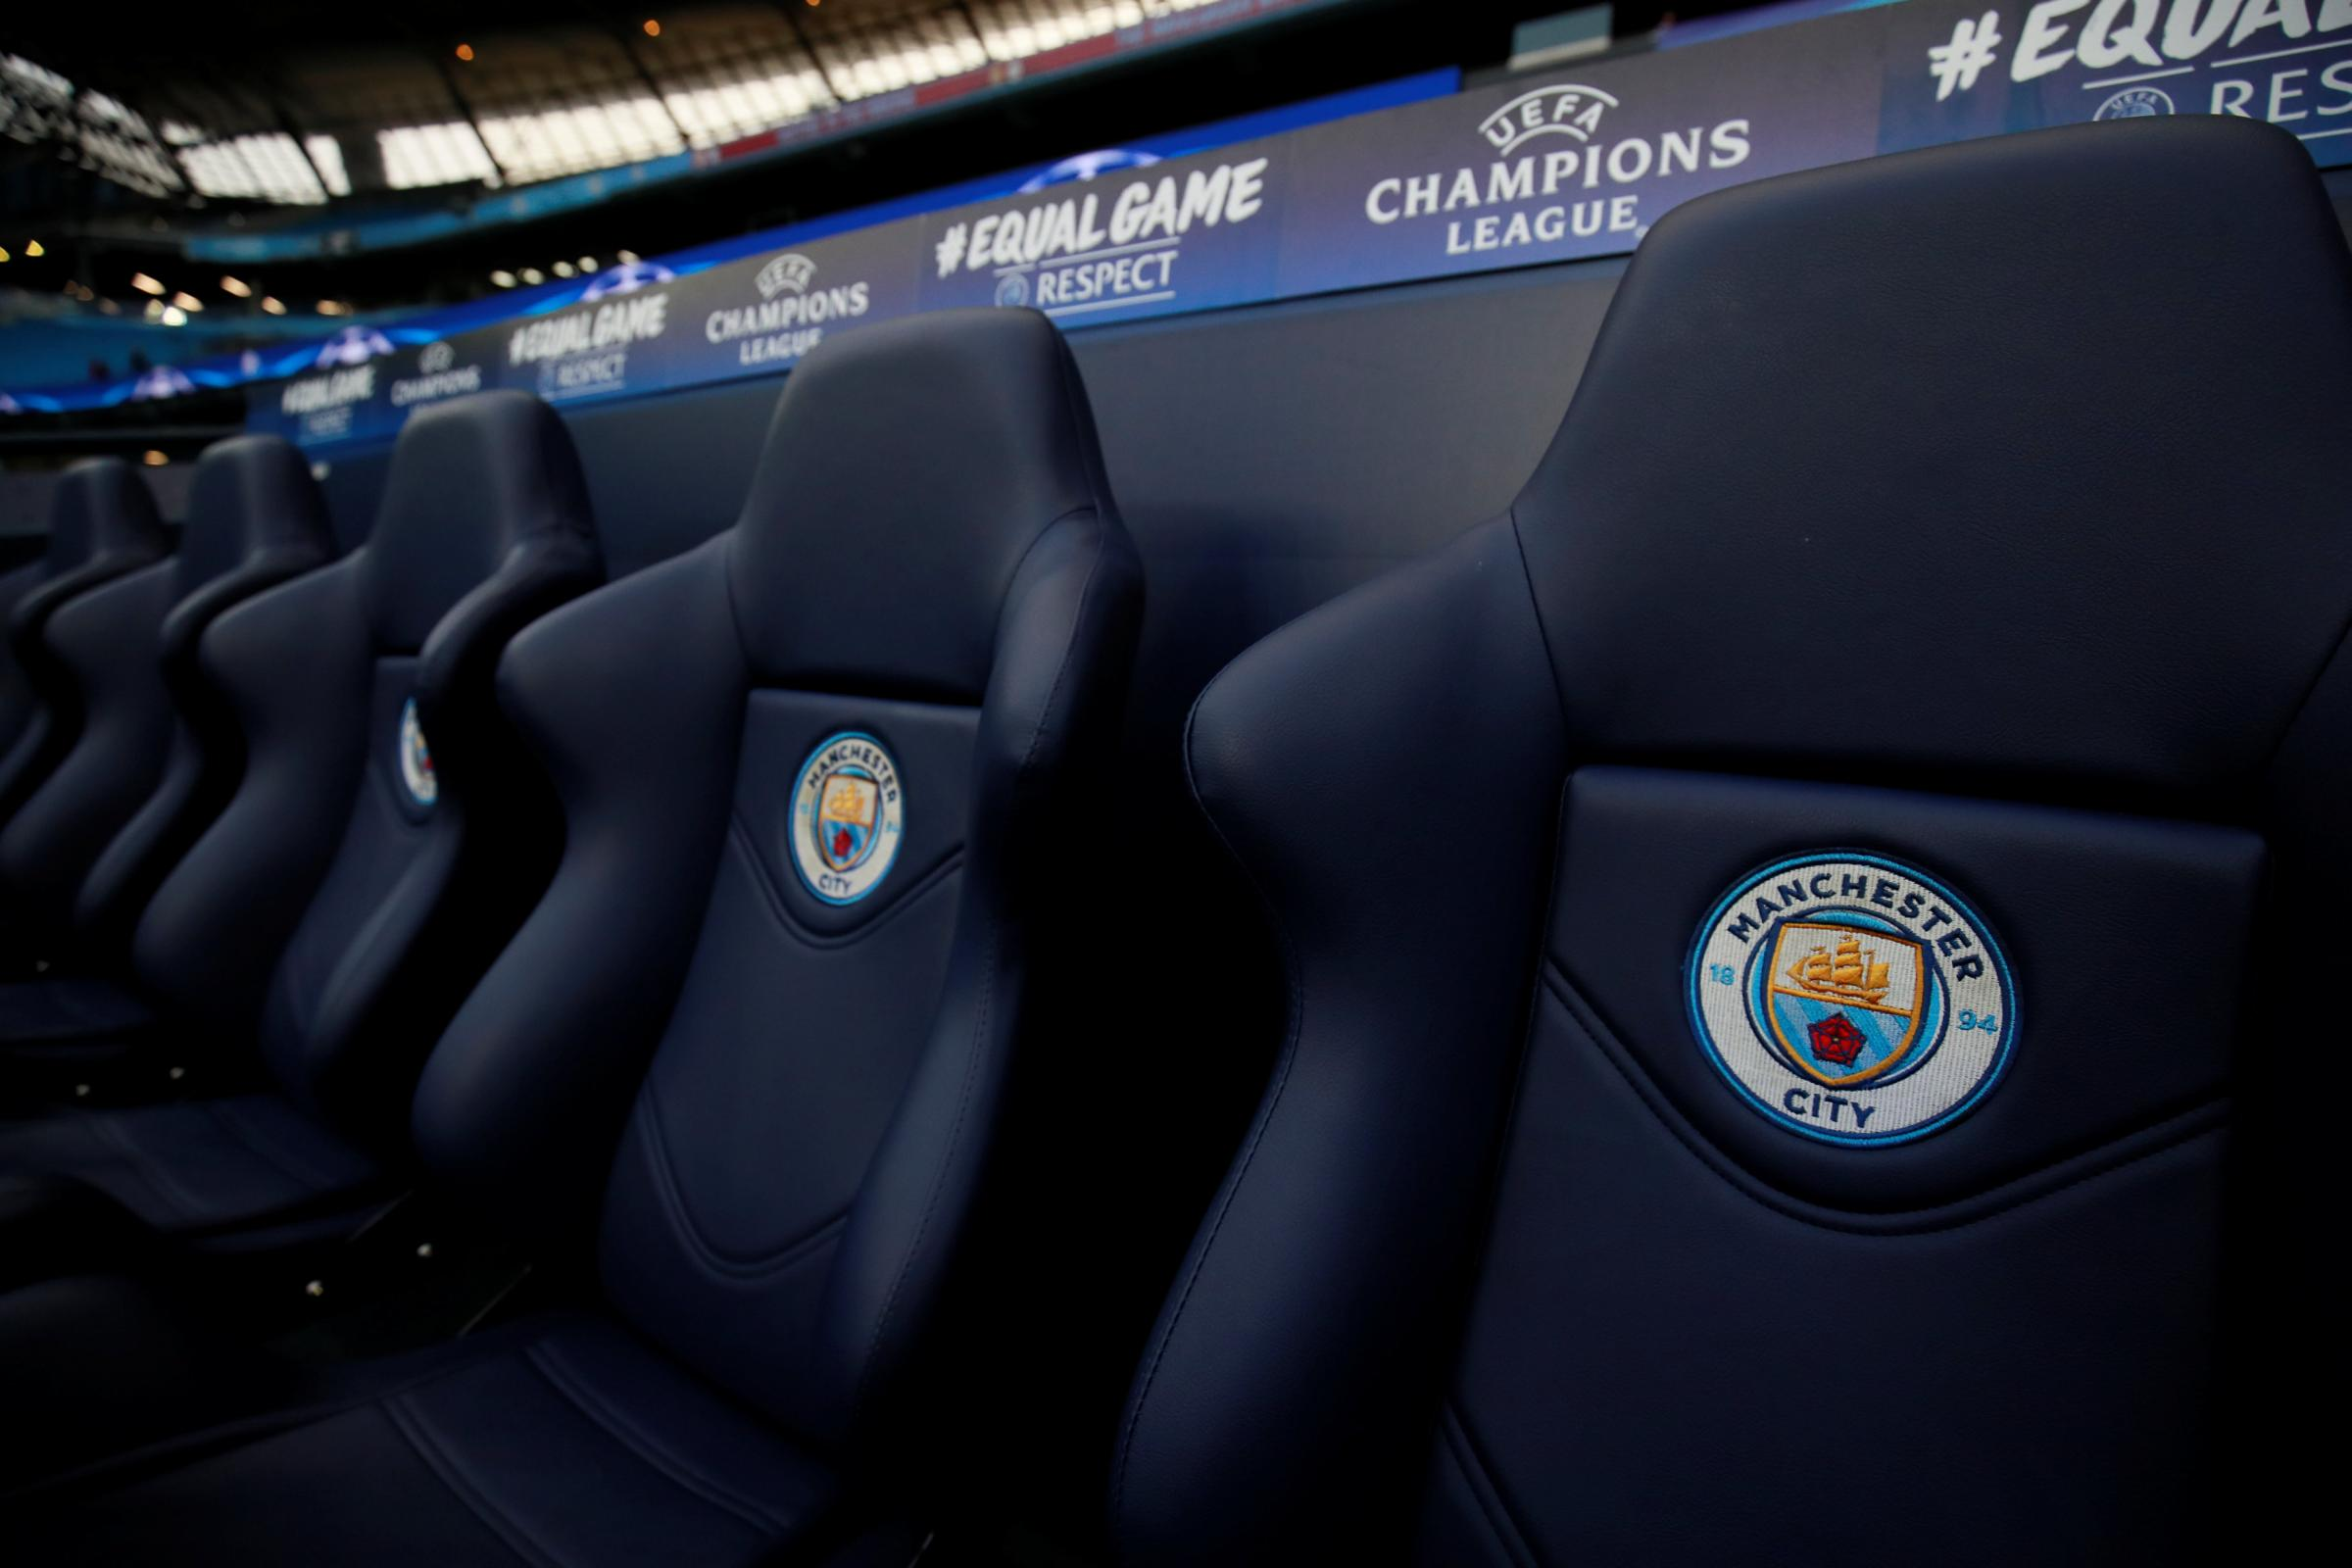 The trip to the Etihad Stadium has been put back to January 2. Picture: Action Images